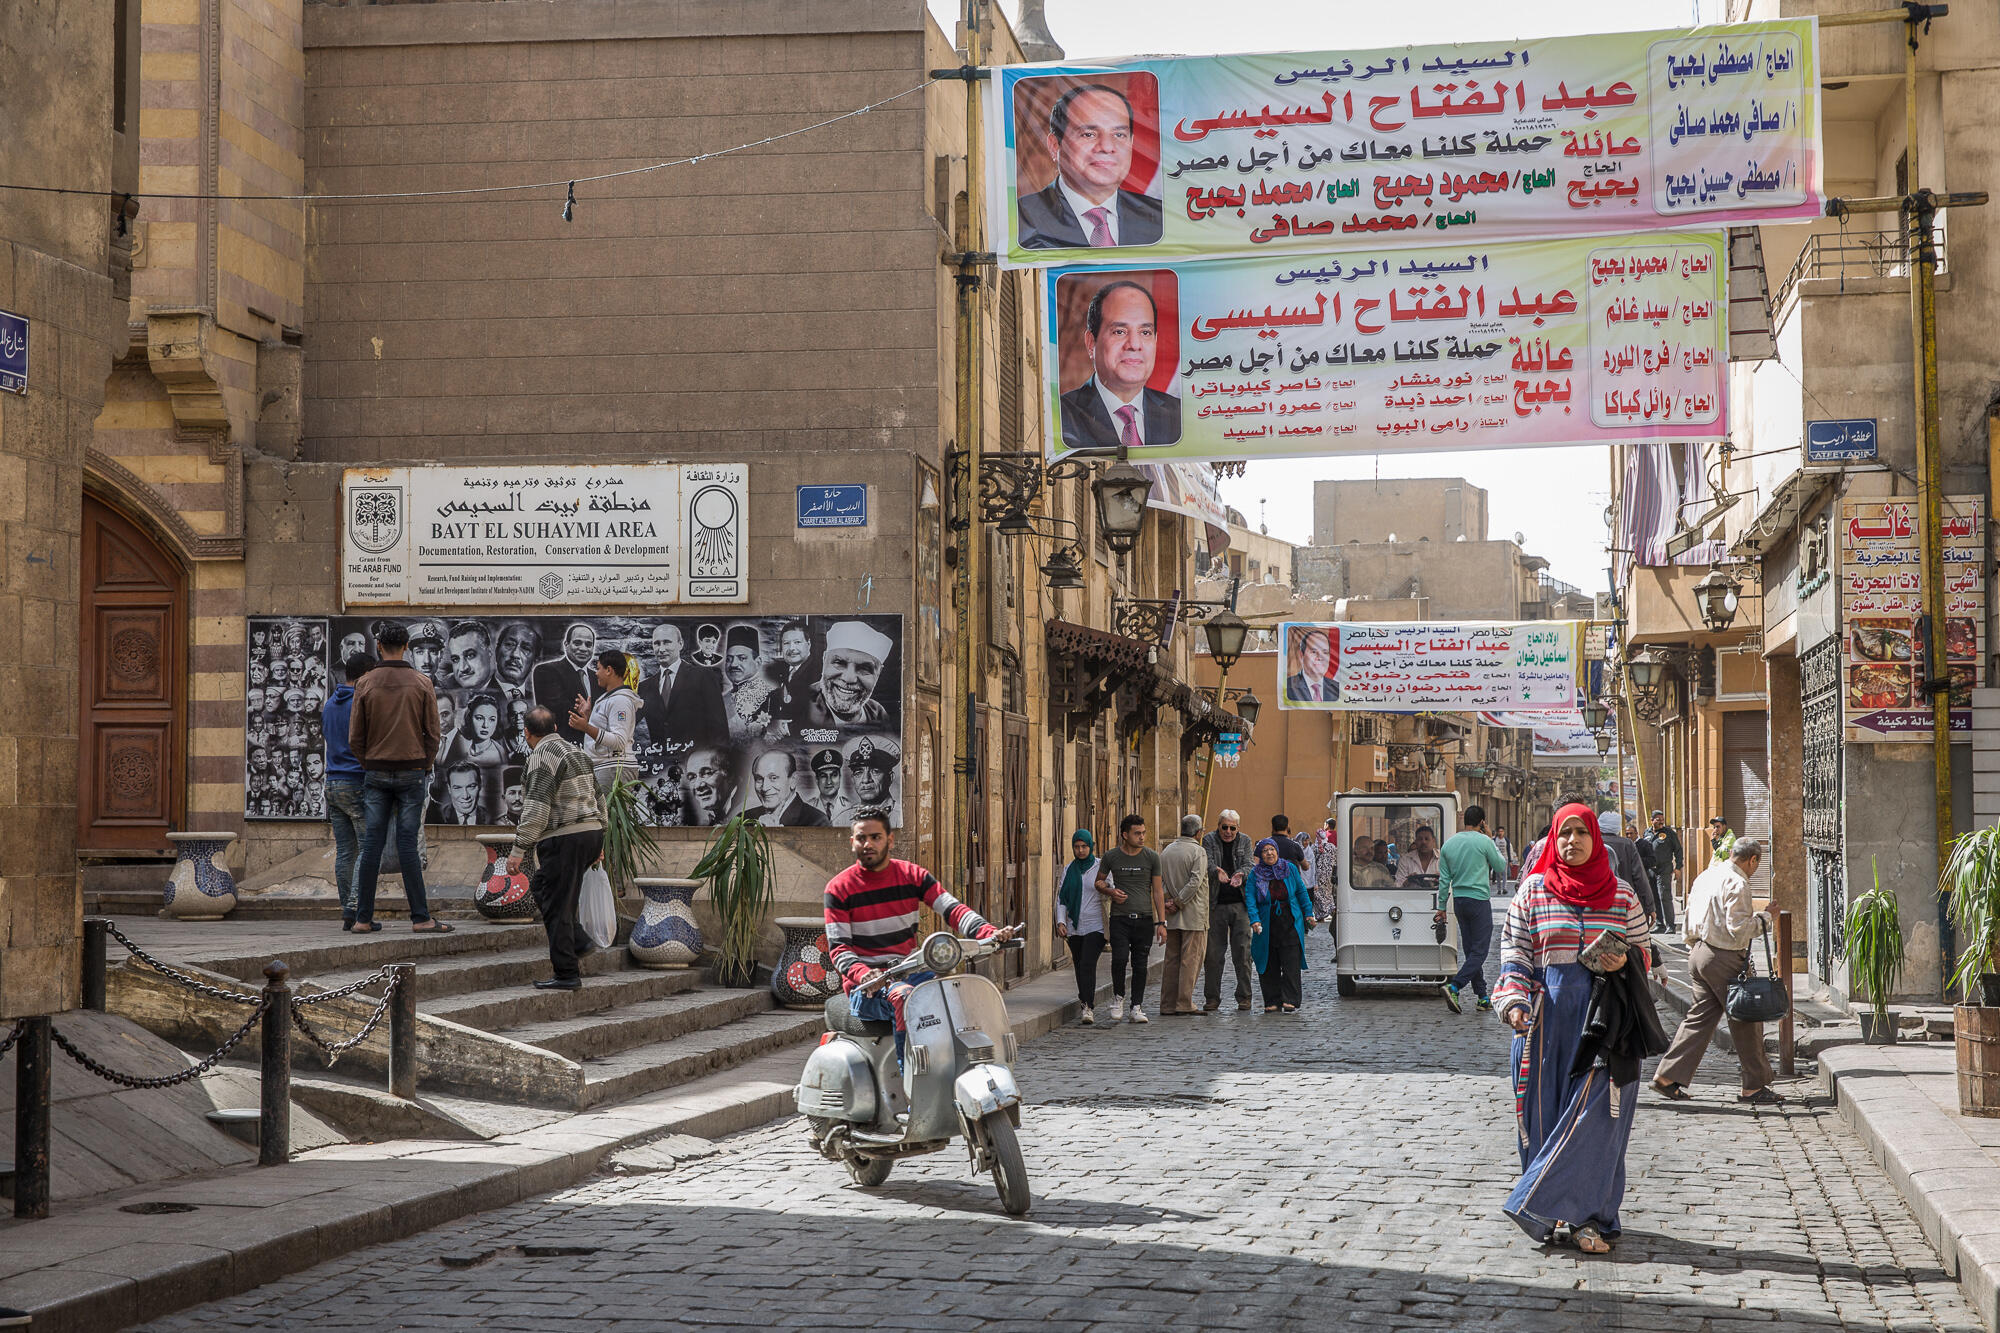 Banners close to a polling station in el-Gamaleya, the neighbourhood where Abdel Fattah al-Sisi grew up in Cairo, 26 March 2018.